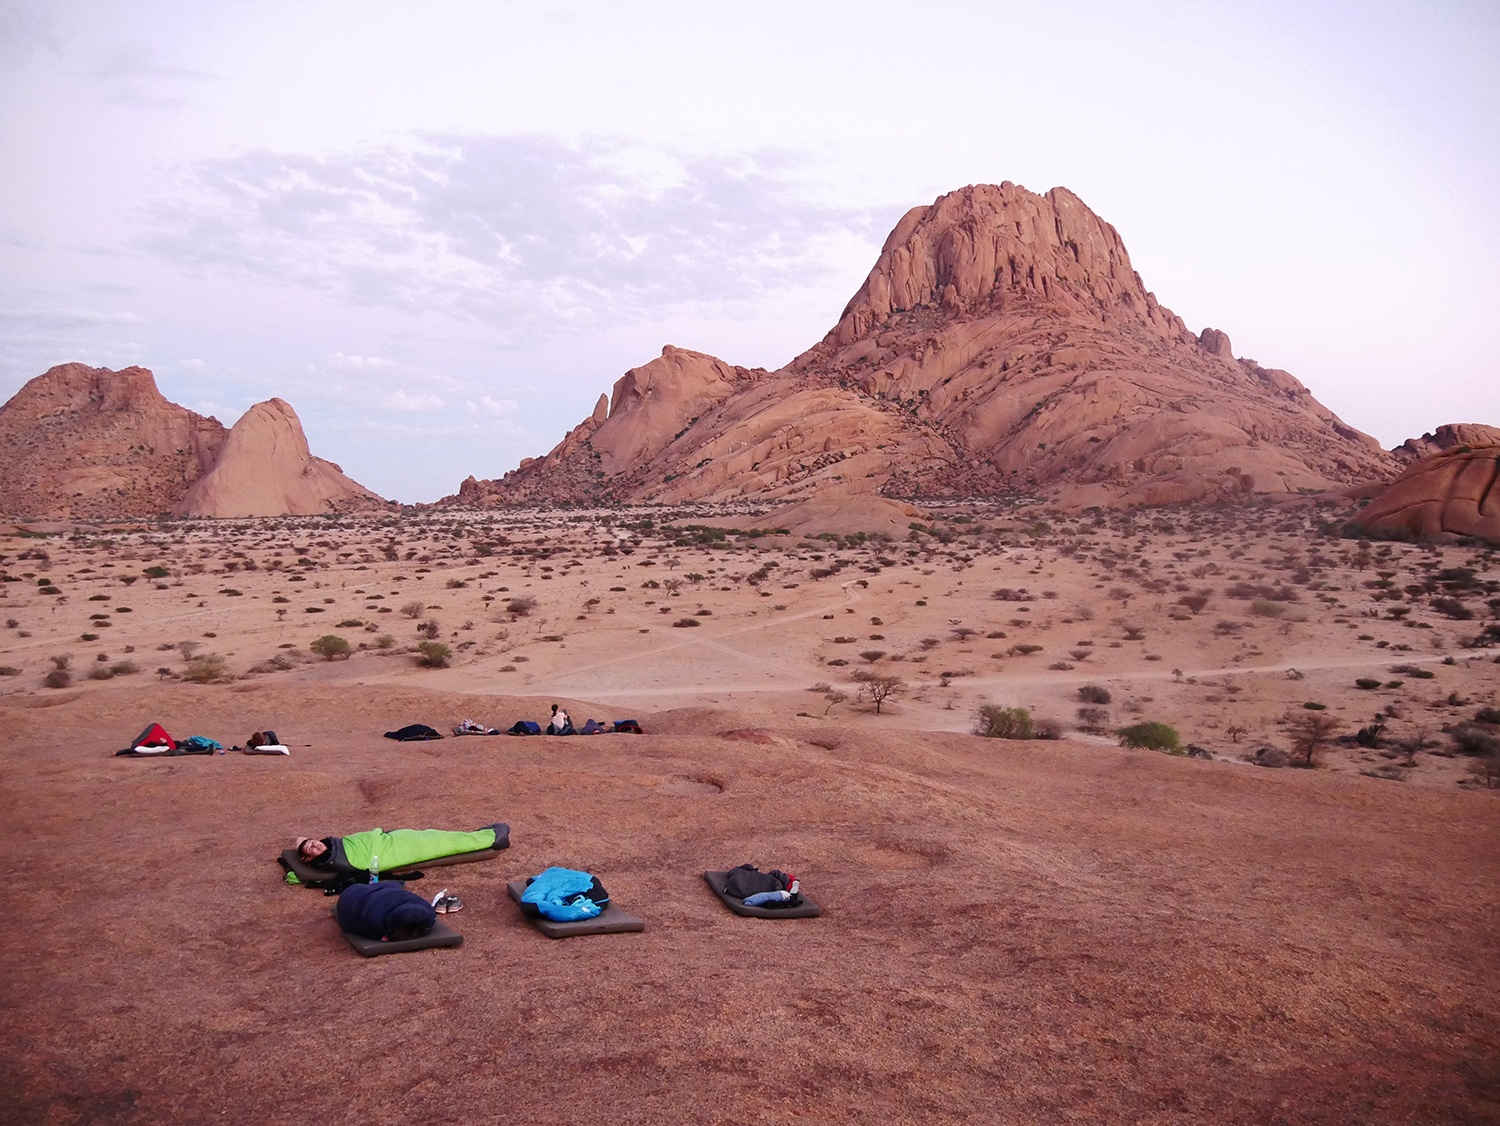 A tough but spectacular camp trip under the Spitzkoppe (Namibia)